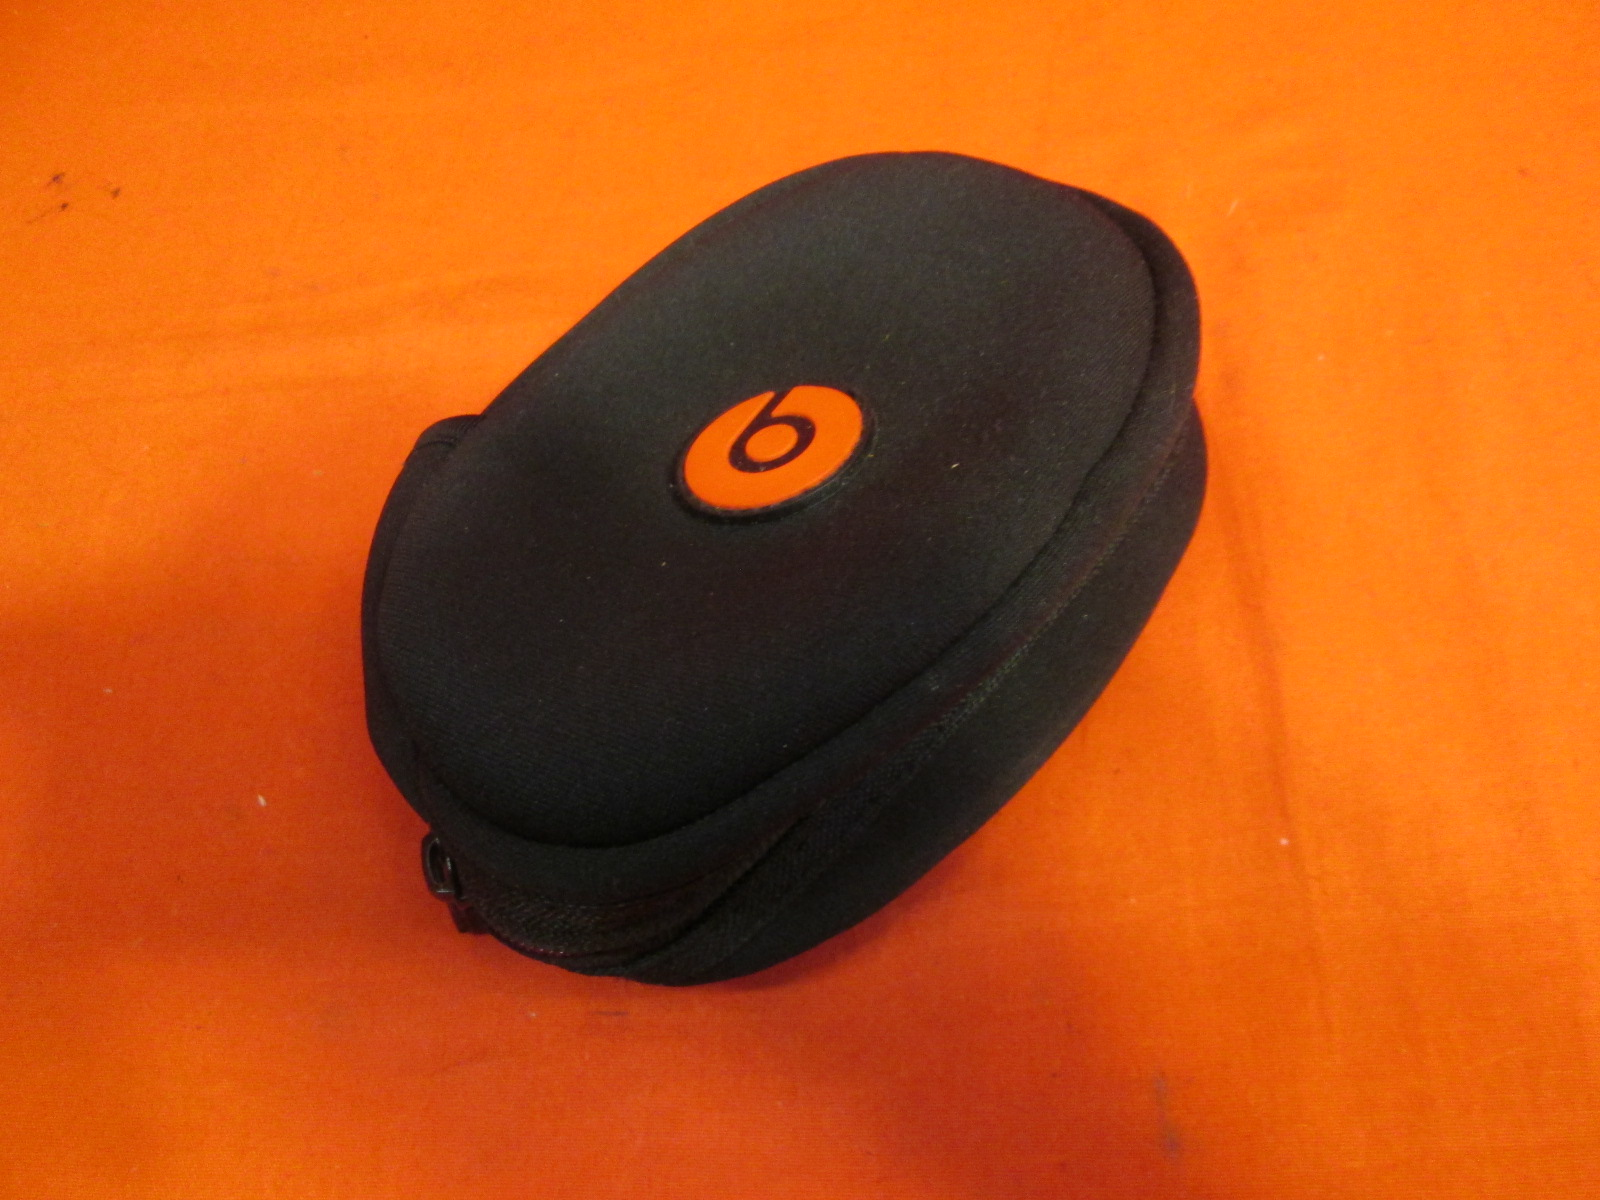 Beats OEM Replacement Soft Case Black For Beats Headphones